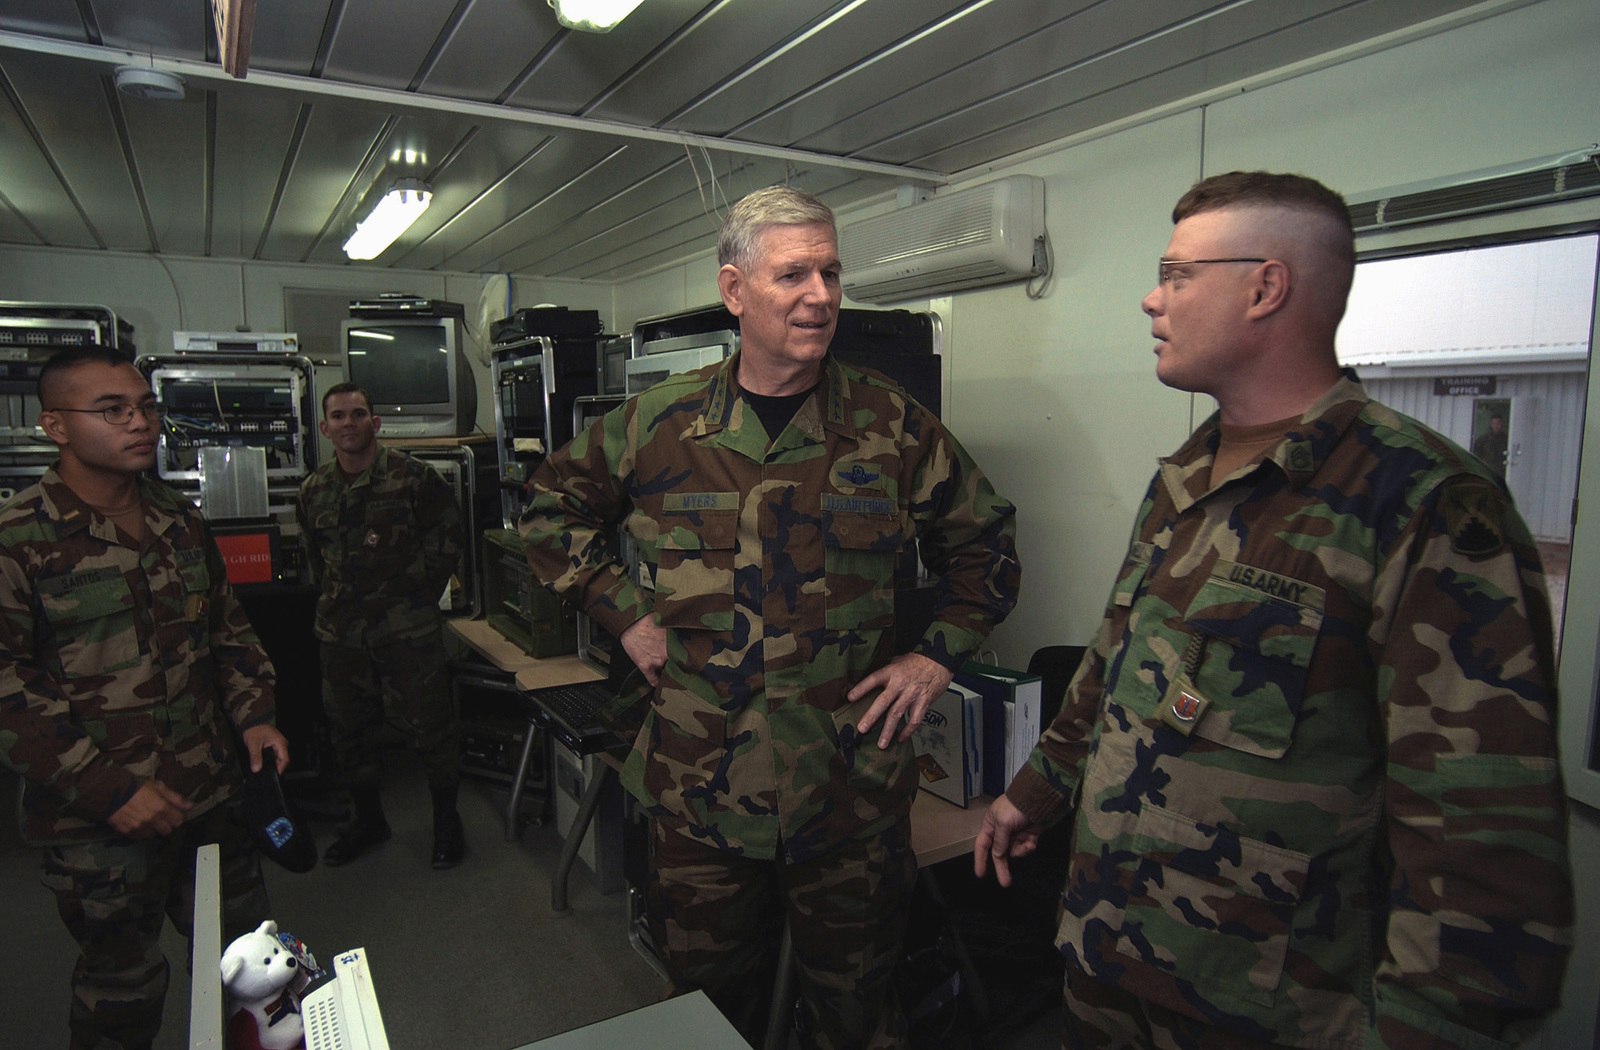 US Army (USA) STAFF Sergeant (SSG) Daniel Cornell (right), Non-Commissioned Officer in Charge (NCOIC), 7th Signal Brigade Communications Package, Mannheim, Germany, explains the basic installation of all communications at the Advanced Operational Base in Krtsanisi, Republic of Georgia, to US Air Force (USAF) General (GEN) Richard B. Myers, Chairman of the Joint Chiefs of STAFF (JCS). General Myers is touring the Georgia Train and Equip Program (GTEP) complex and training grounds along with meeting top military officials and the Georgian President to discuss GTEP. GTEP is a flexible, time phased training initiative that builds upon a strong military-to-military relationship developed...